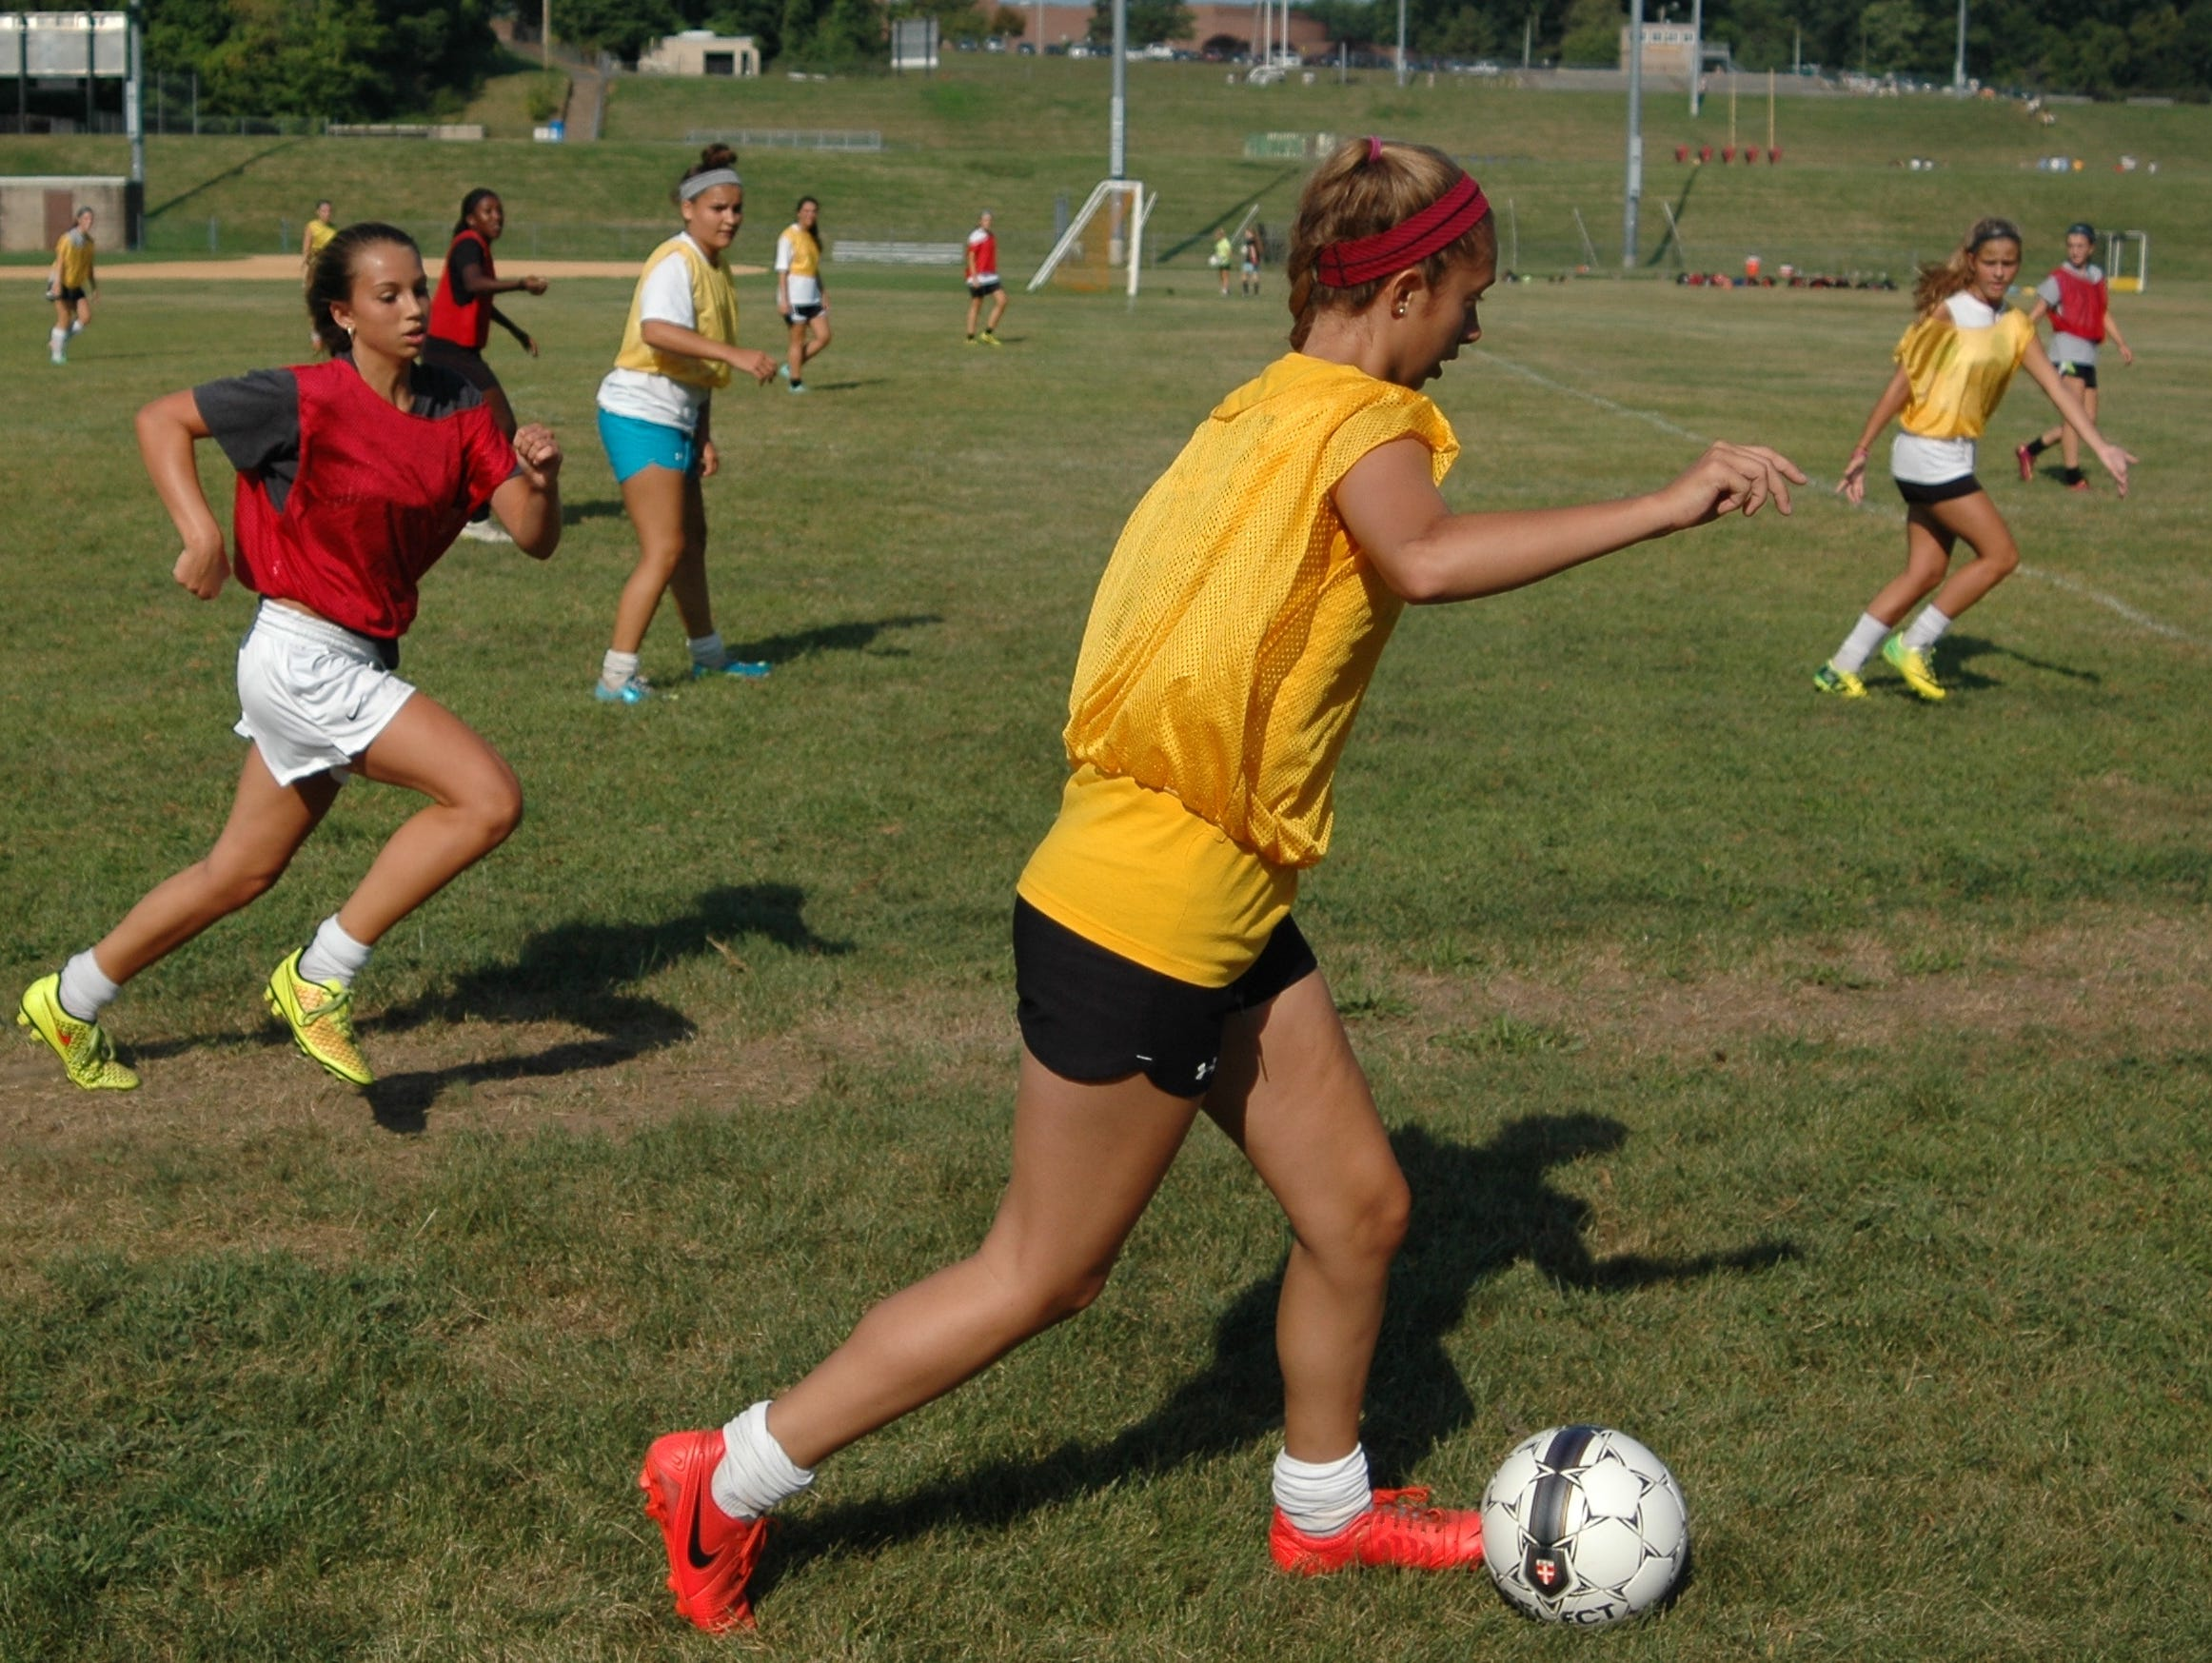 Members of Clarkstown South's girls soccer team scrimmage during a pre-season practice session at Clarkstown South High School on Auguest 25, 2015.